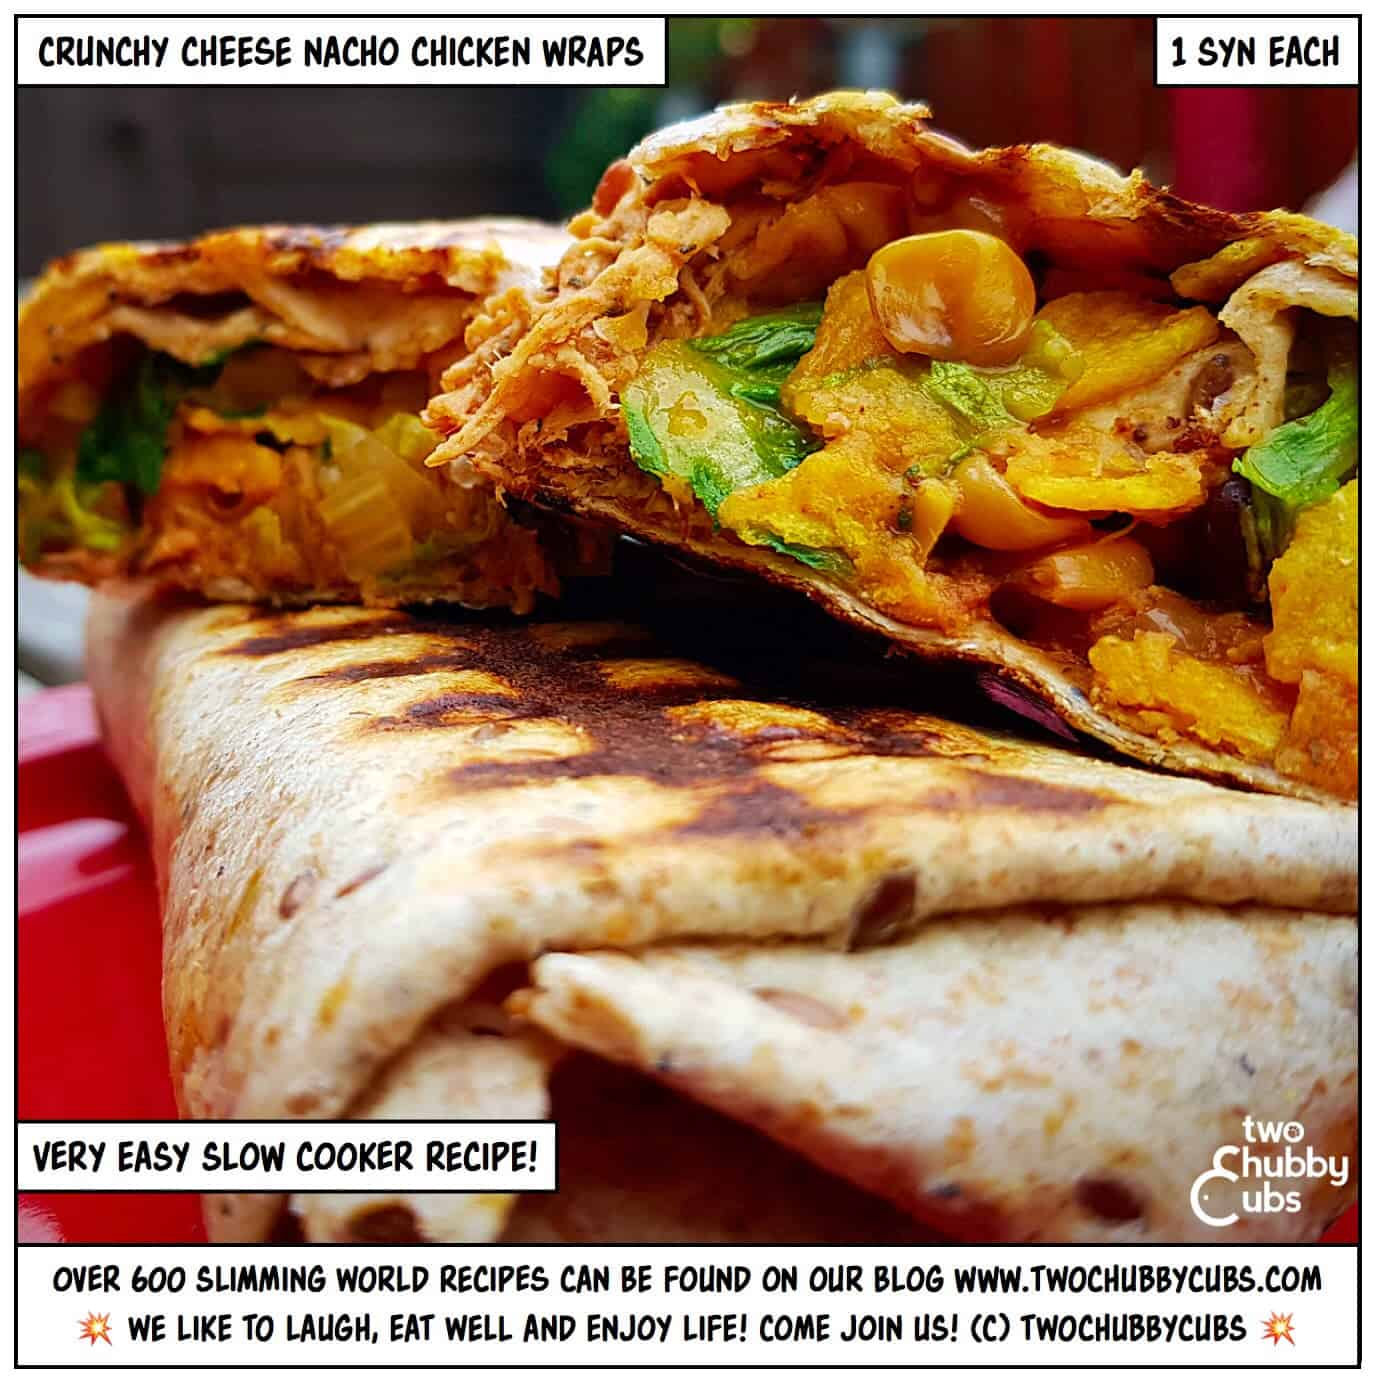 Crunchy Nacho Chicken Wraps